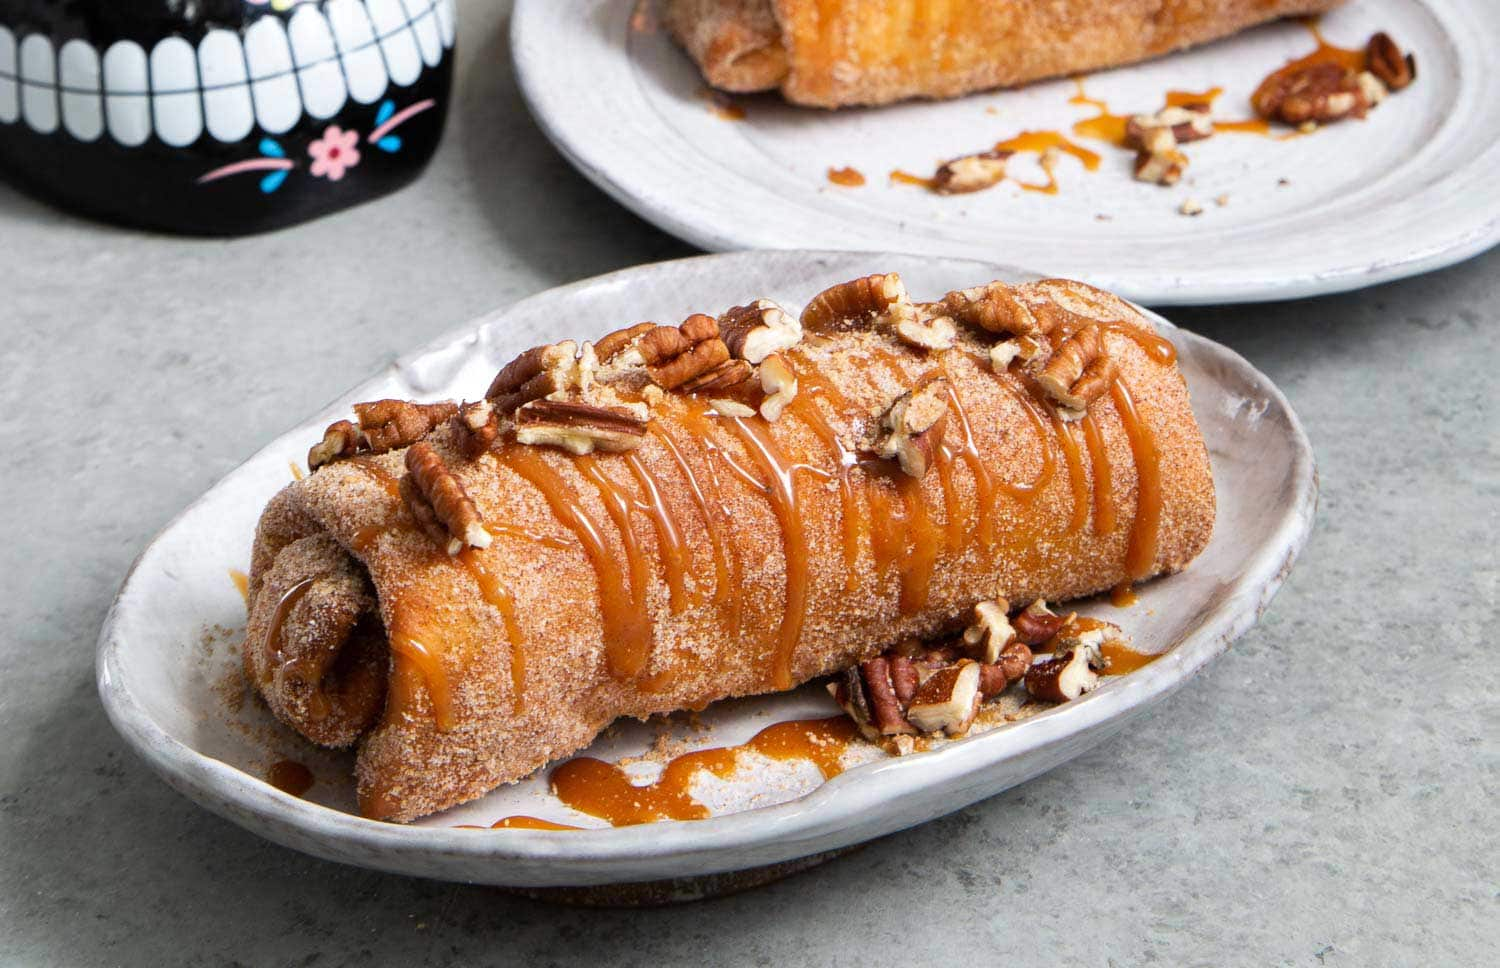 Pineapple Cheesecake Chimichangas. Crispy fried burritos filled with vanilla cream cheese and cinnamon spiced pineapple chunks. The dessert chimichangas are tossed in a sweet graham cracker powder.